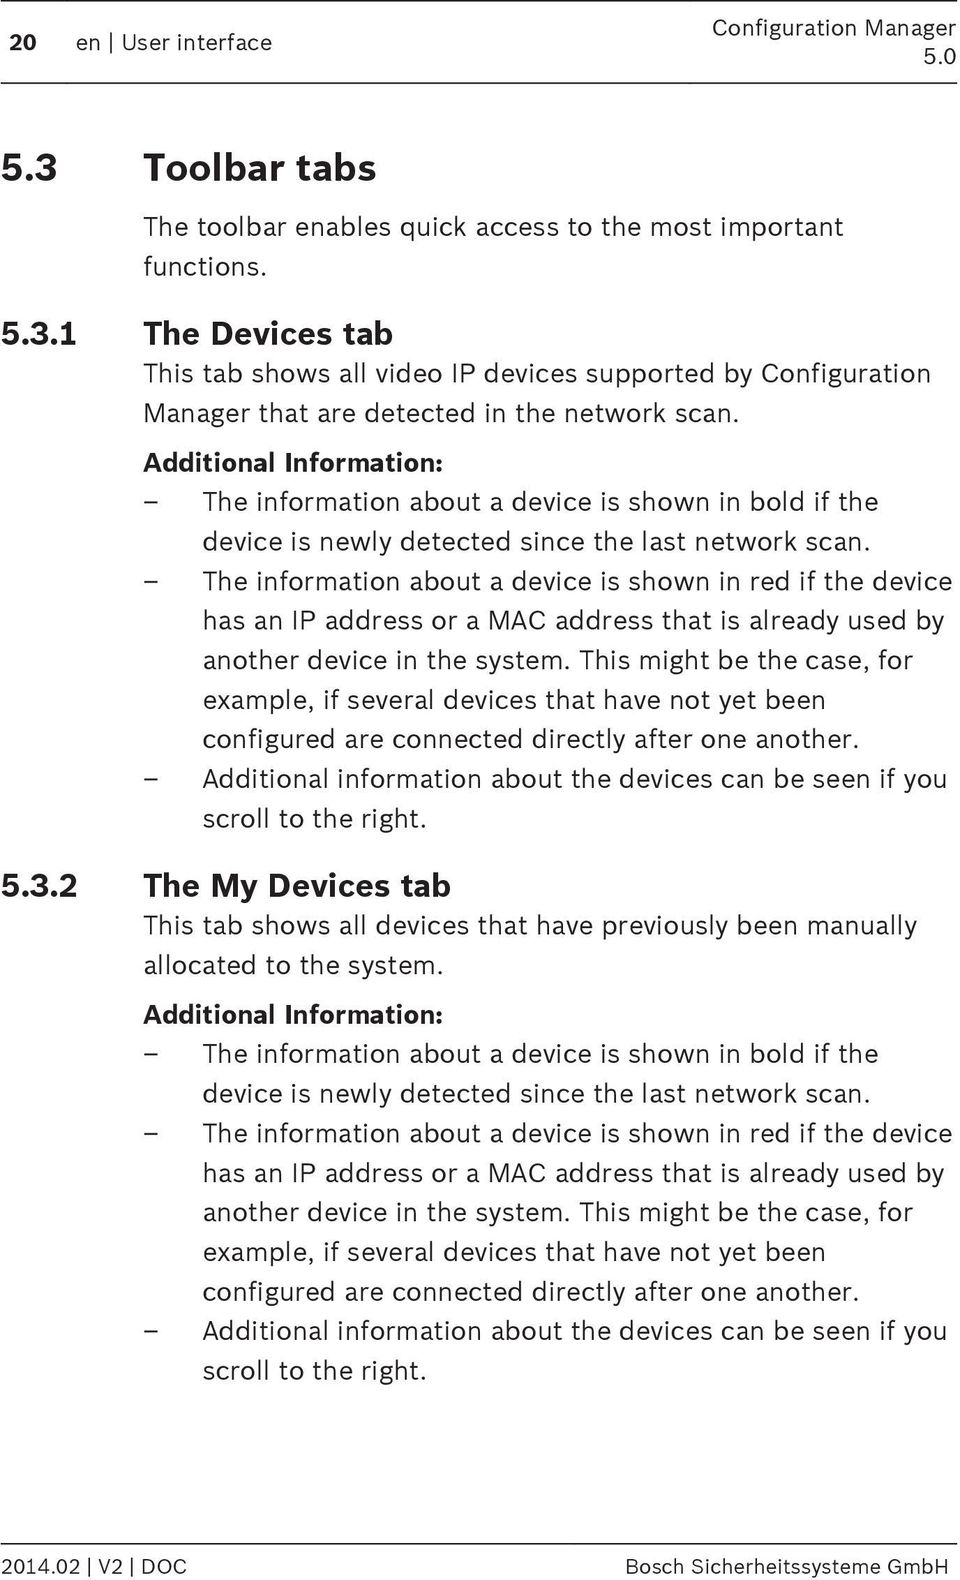 The information about a device is shown in red if the device has an IP address or a MAC address that is already used by another device in the system.